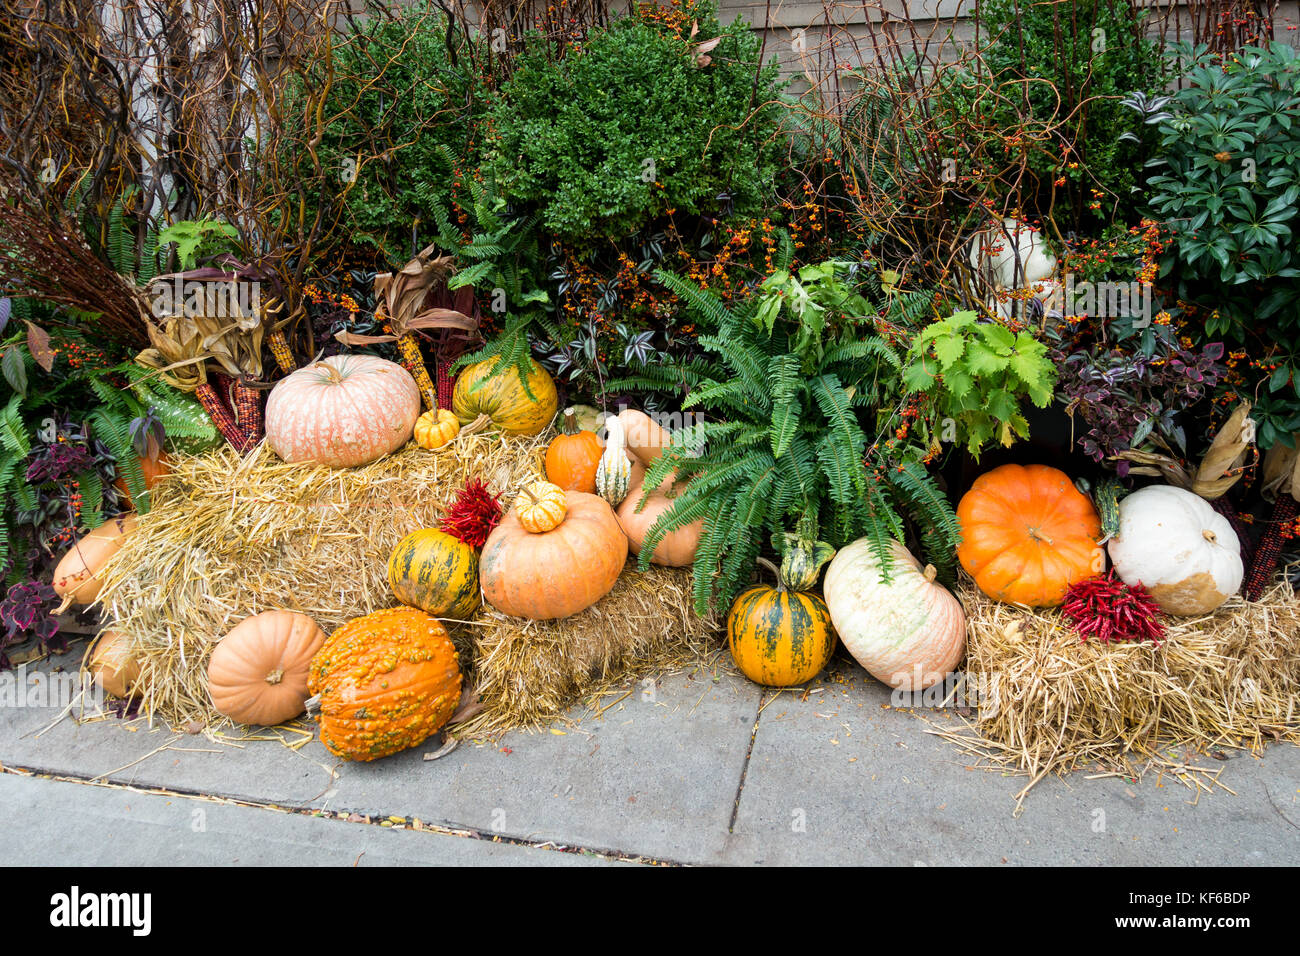 A display of pumpkins for Halloween and Thanksgiving - Stock Image